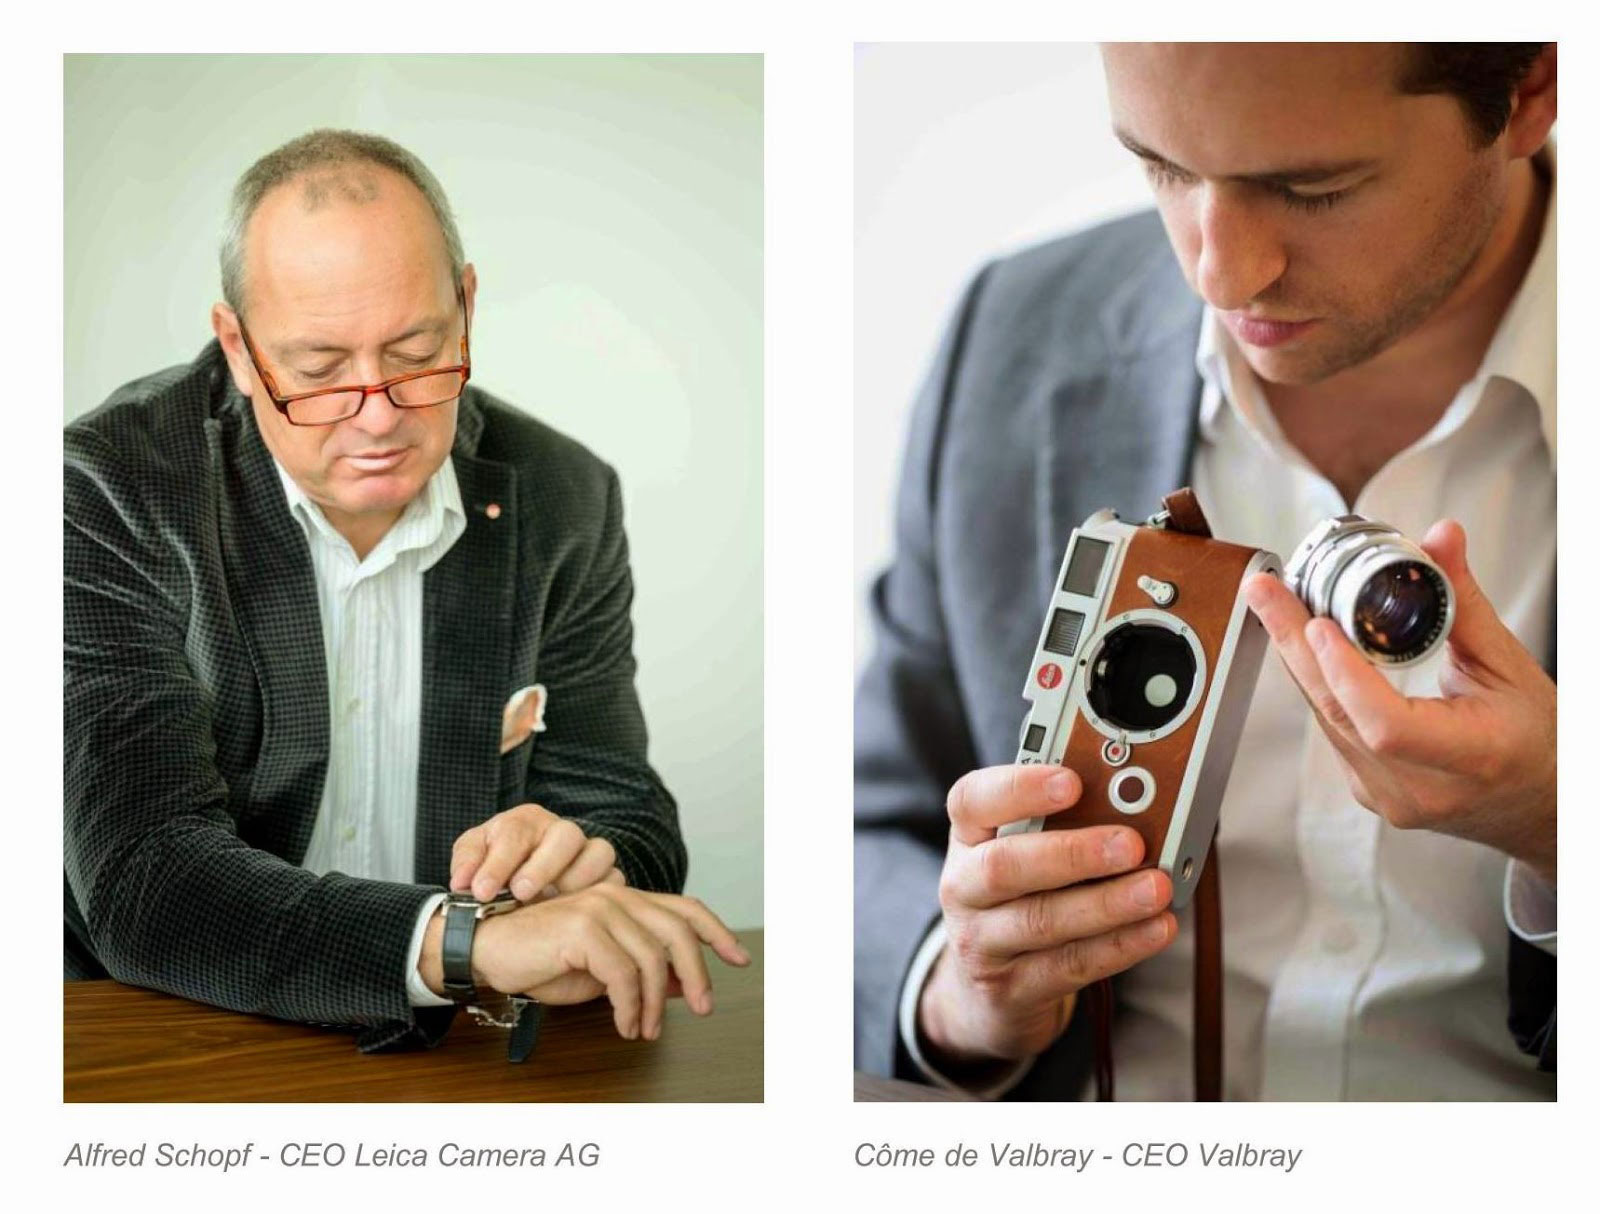 Valbray & Leica CEO